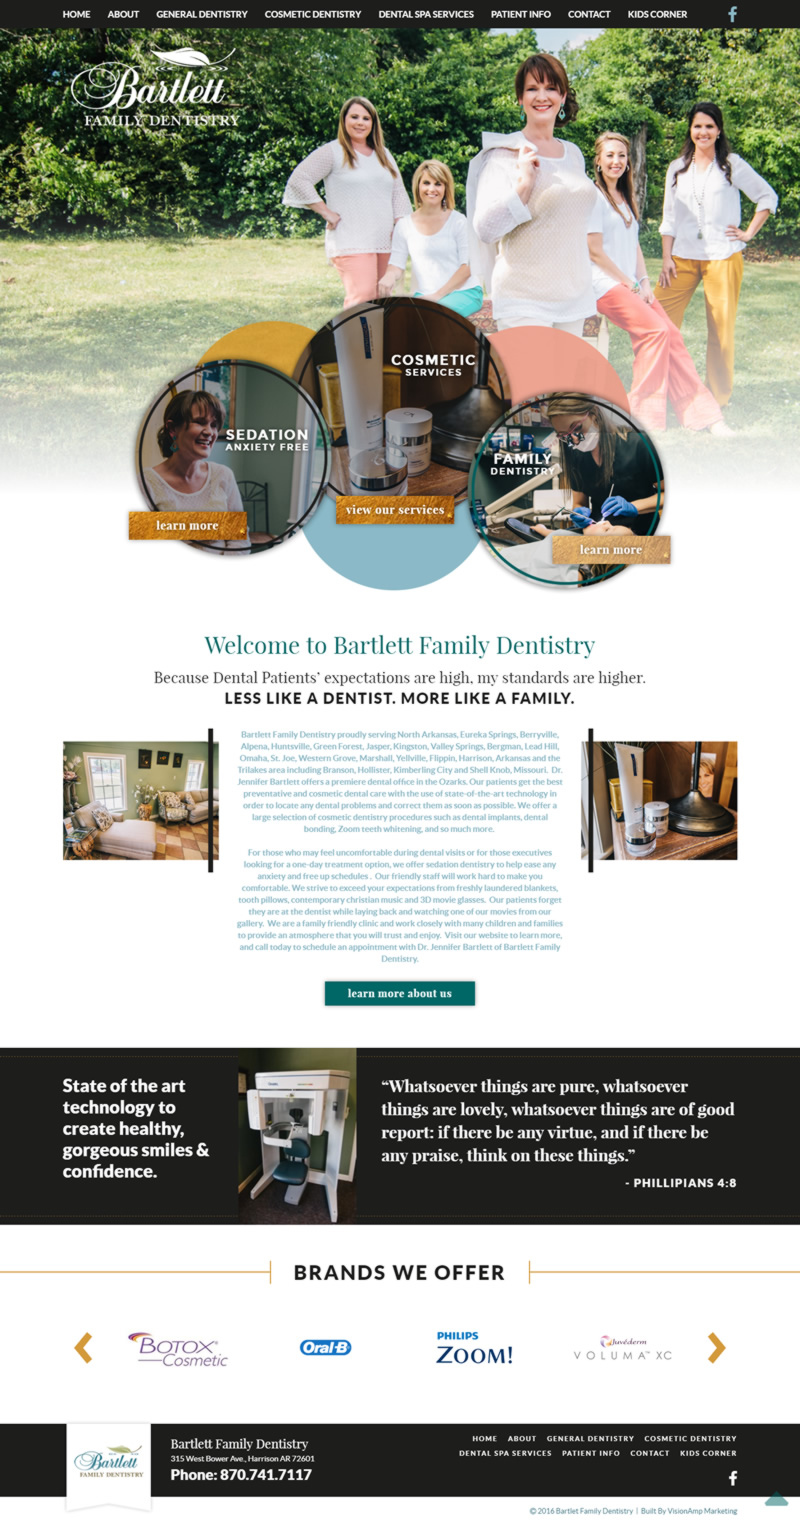 Bartlett Family Dentistry Full Web Design Image